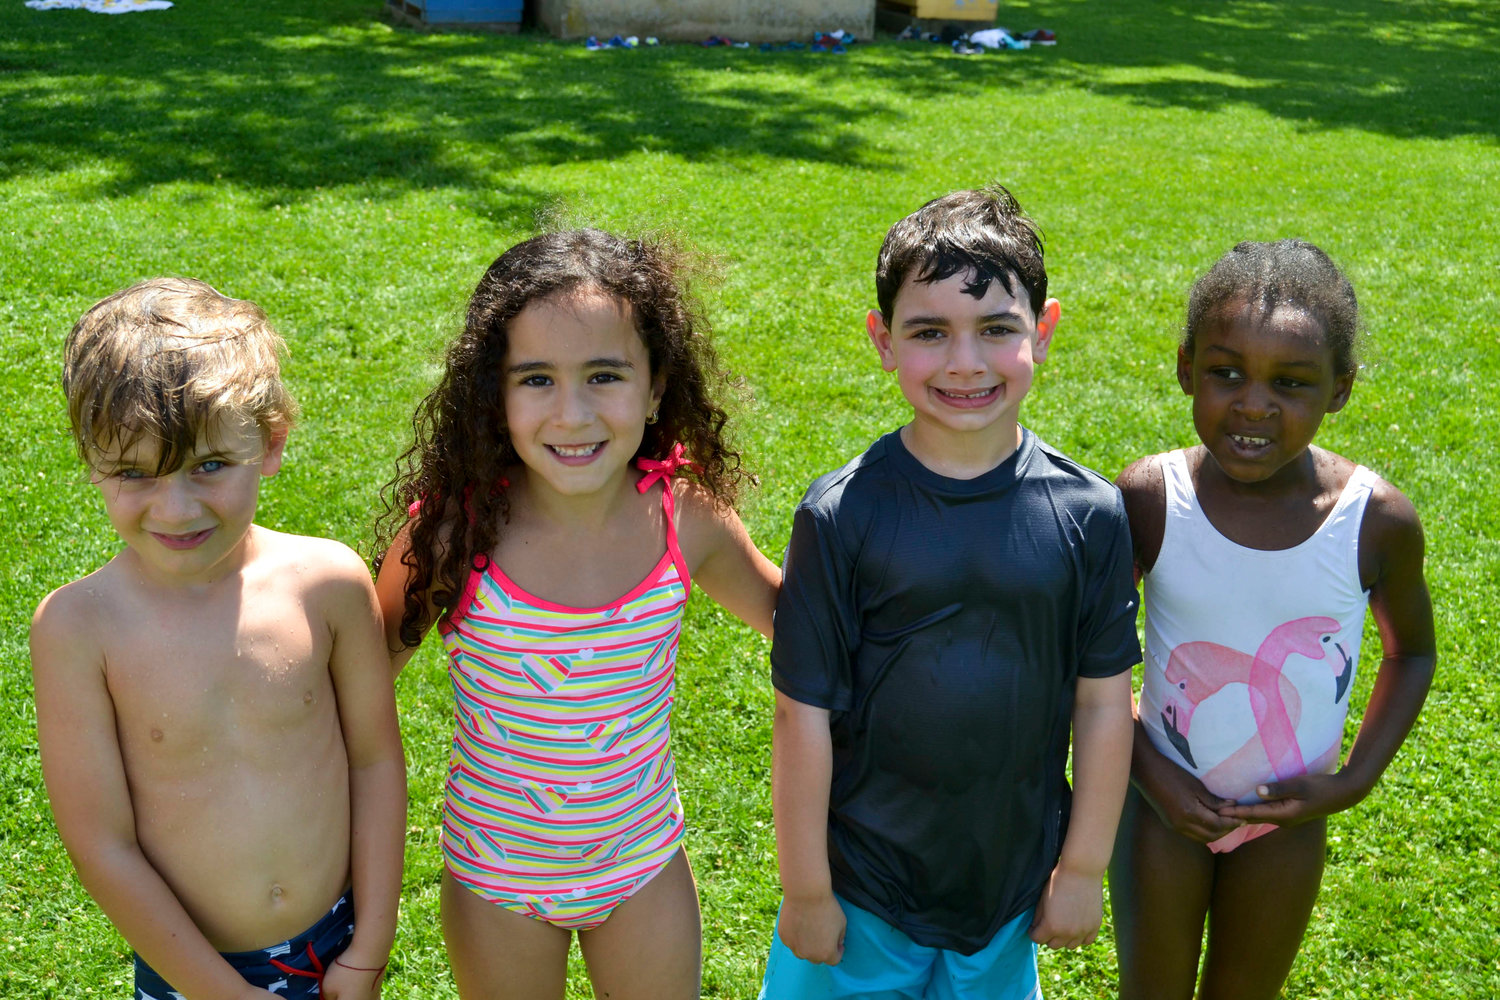 Hewlett-Woodmere campers Oren Kravits, left, Yasmin Rahmanzada, Logan Fratti and Abigail Mentor appeared to enjoy being wet on a hot day.